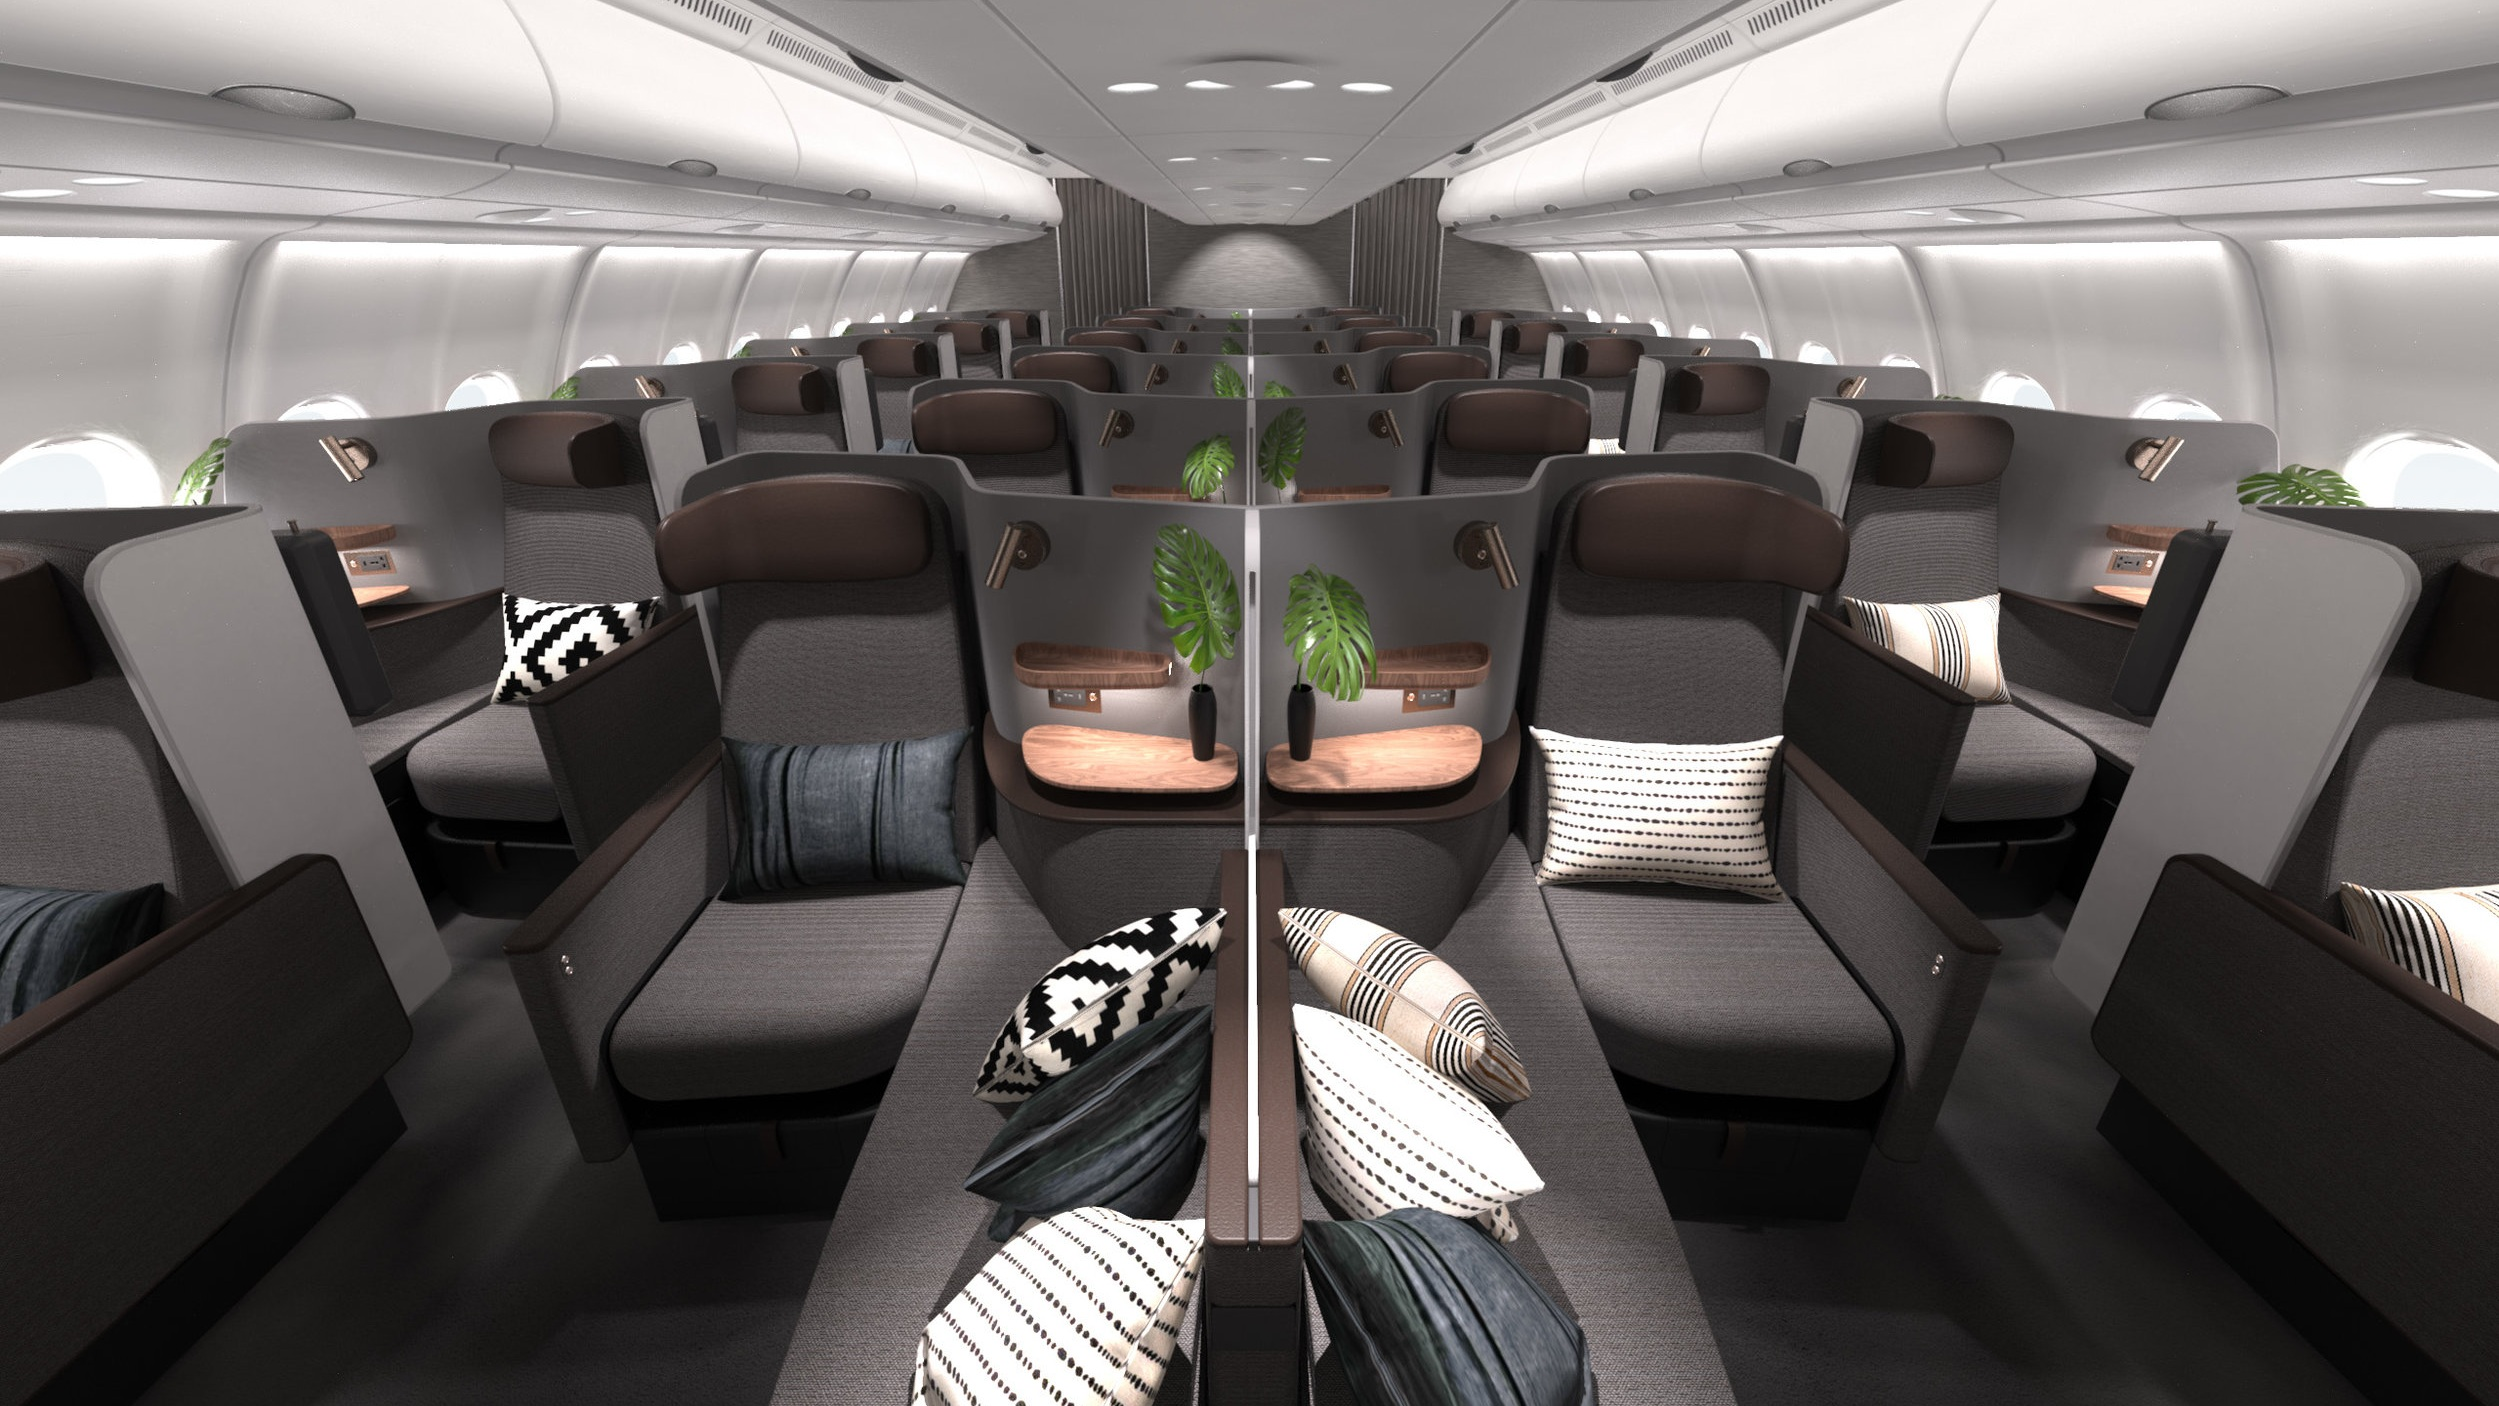 Butterfly - Our award-winning and globally-patented design allows instant transformation between premium economy seats and a business class flat-bed suite.